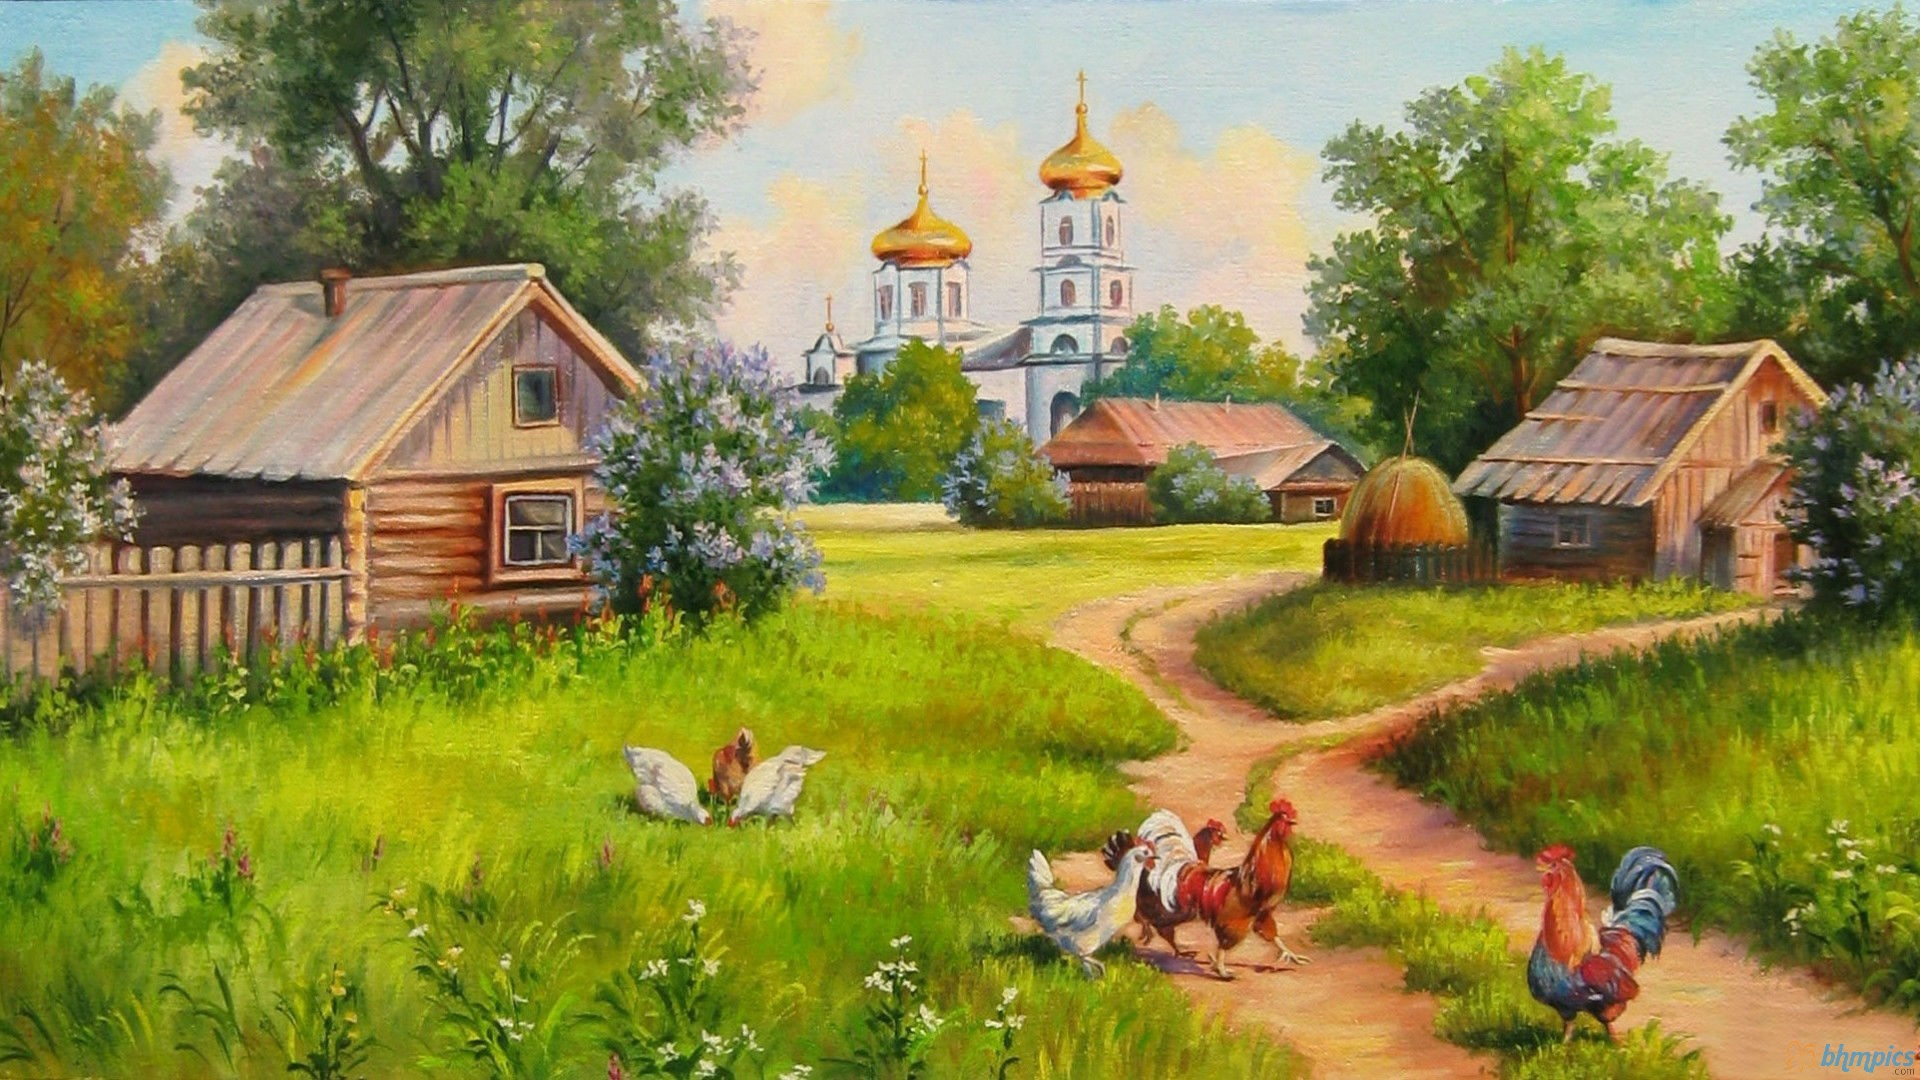 Village Computer Wallpapers Desktop Backgrounds